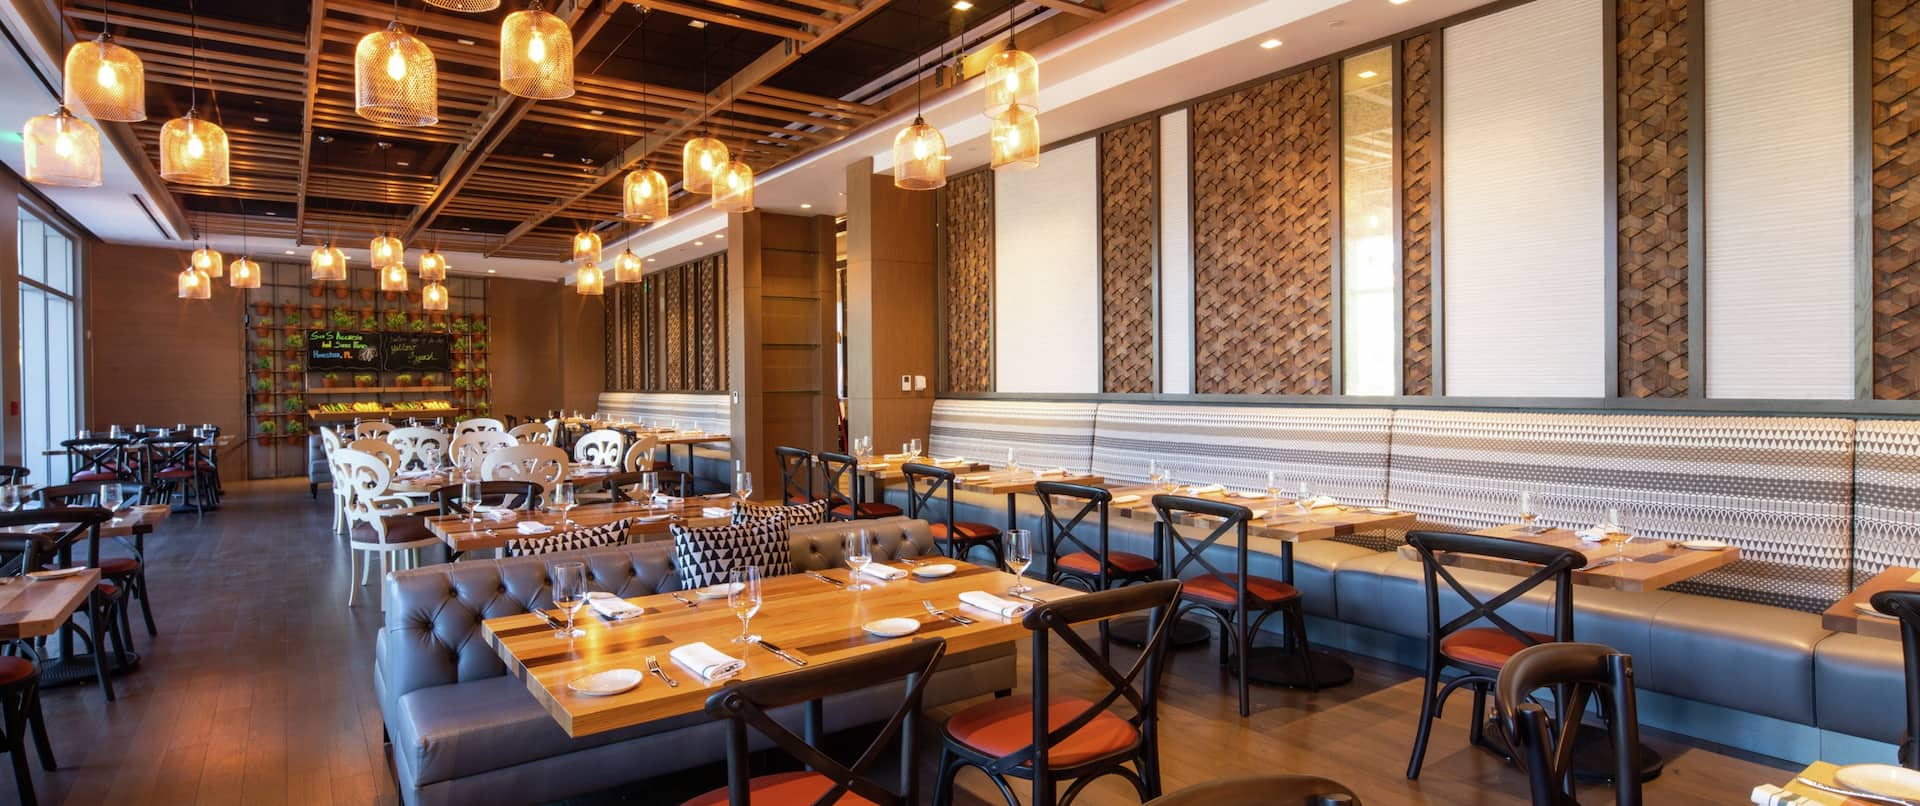 Table 55 Restaurant with wooden tables and blue banquette seating